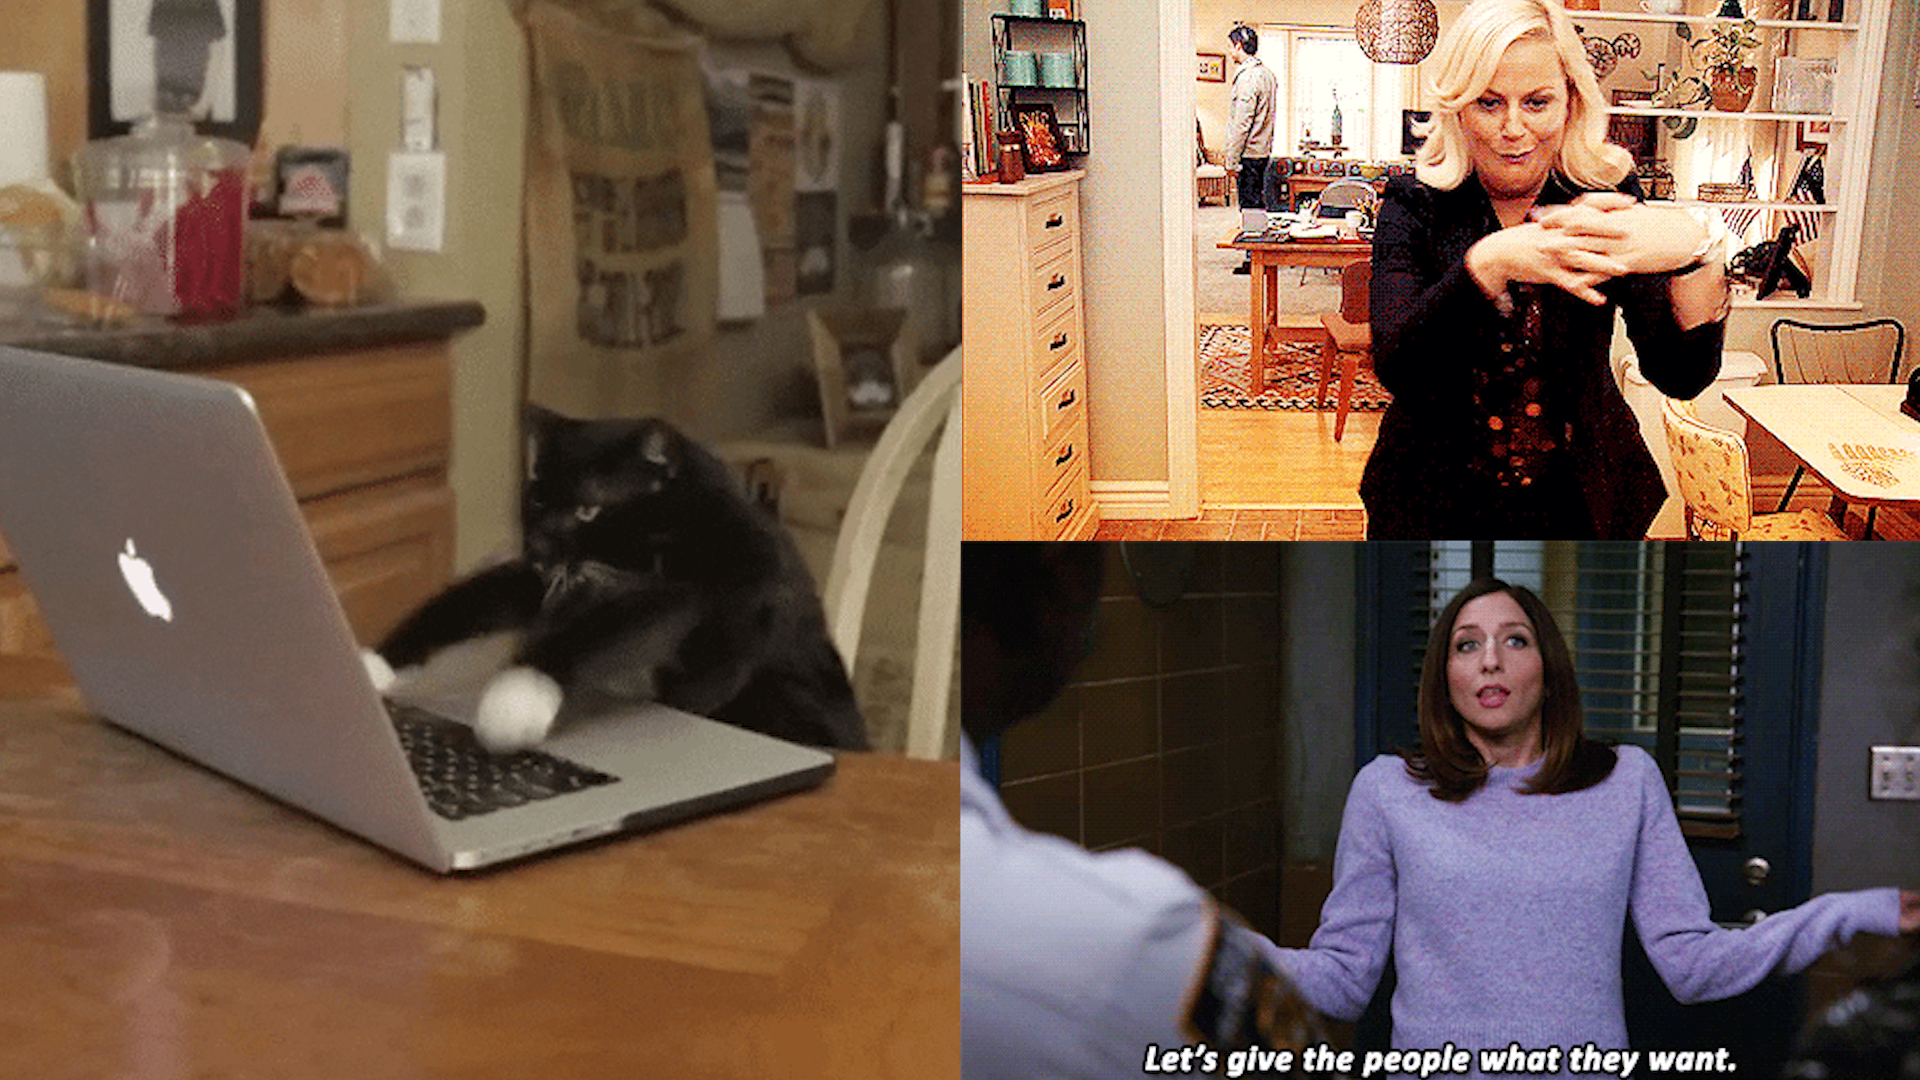 Screenshots of three gifs; on the left is a cat typing on a laptop, on the top right is a blonde woman doing a dance, and in the bottom left is a brunette woman shrugging with the text 'Let's give the people what they want'